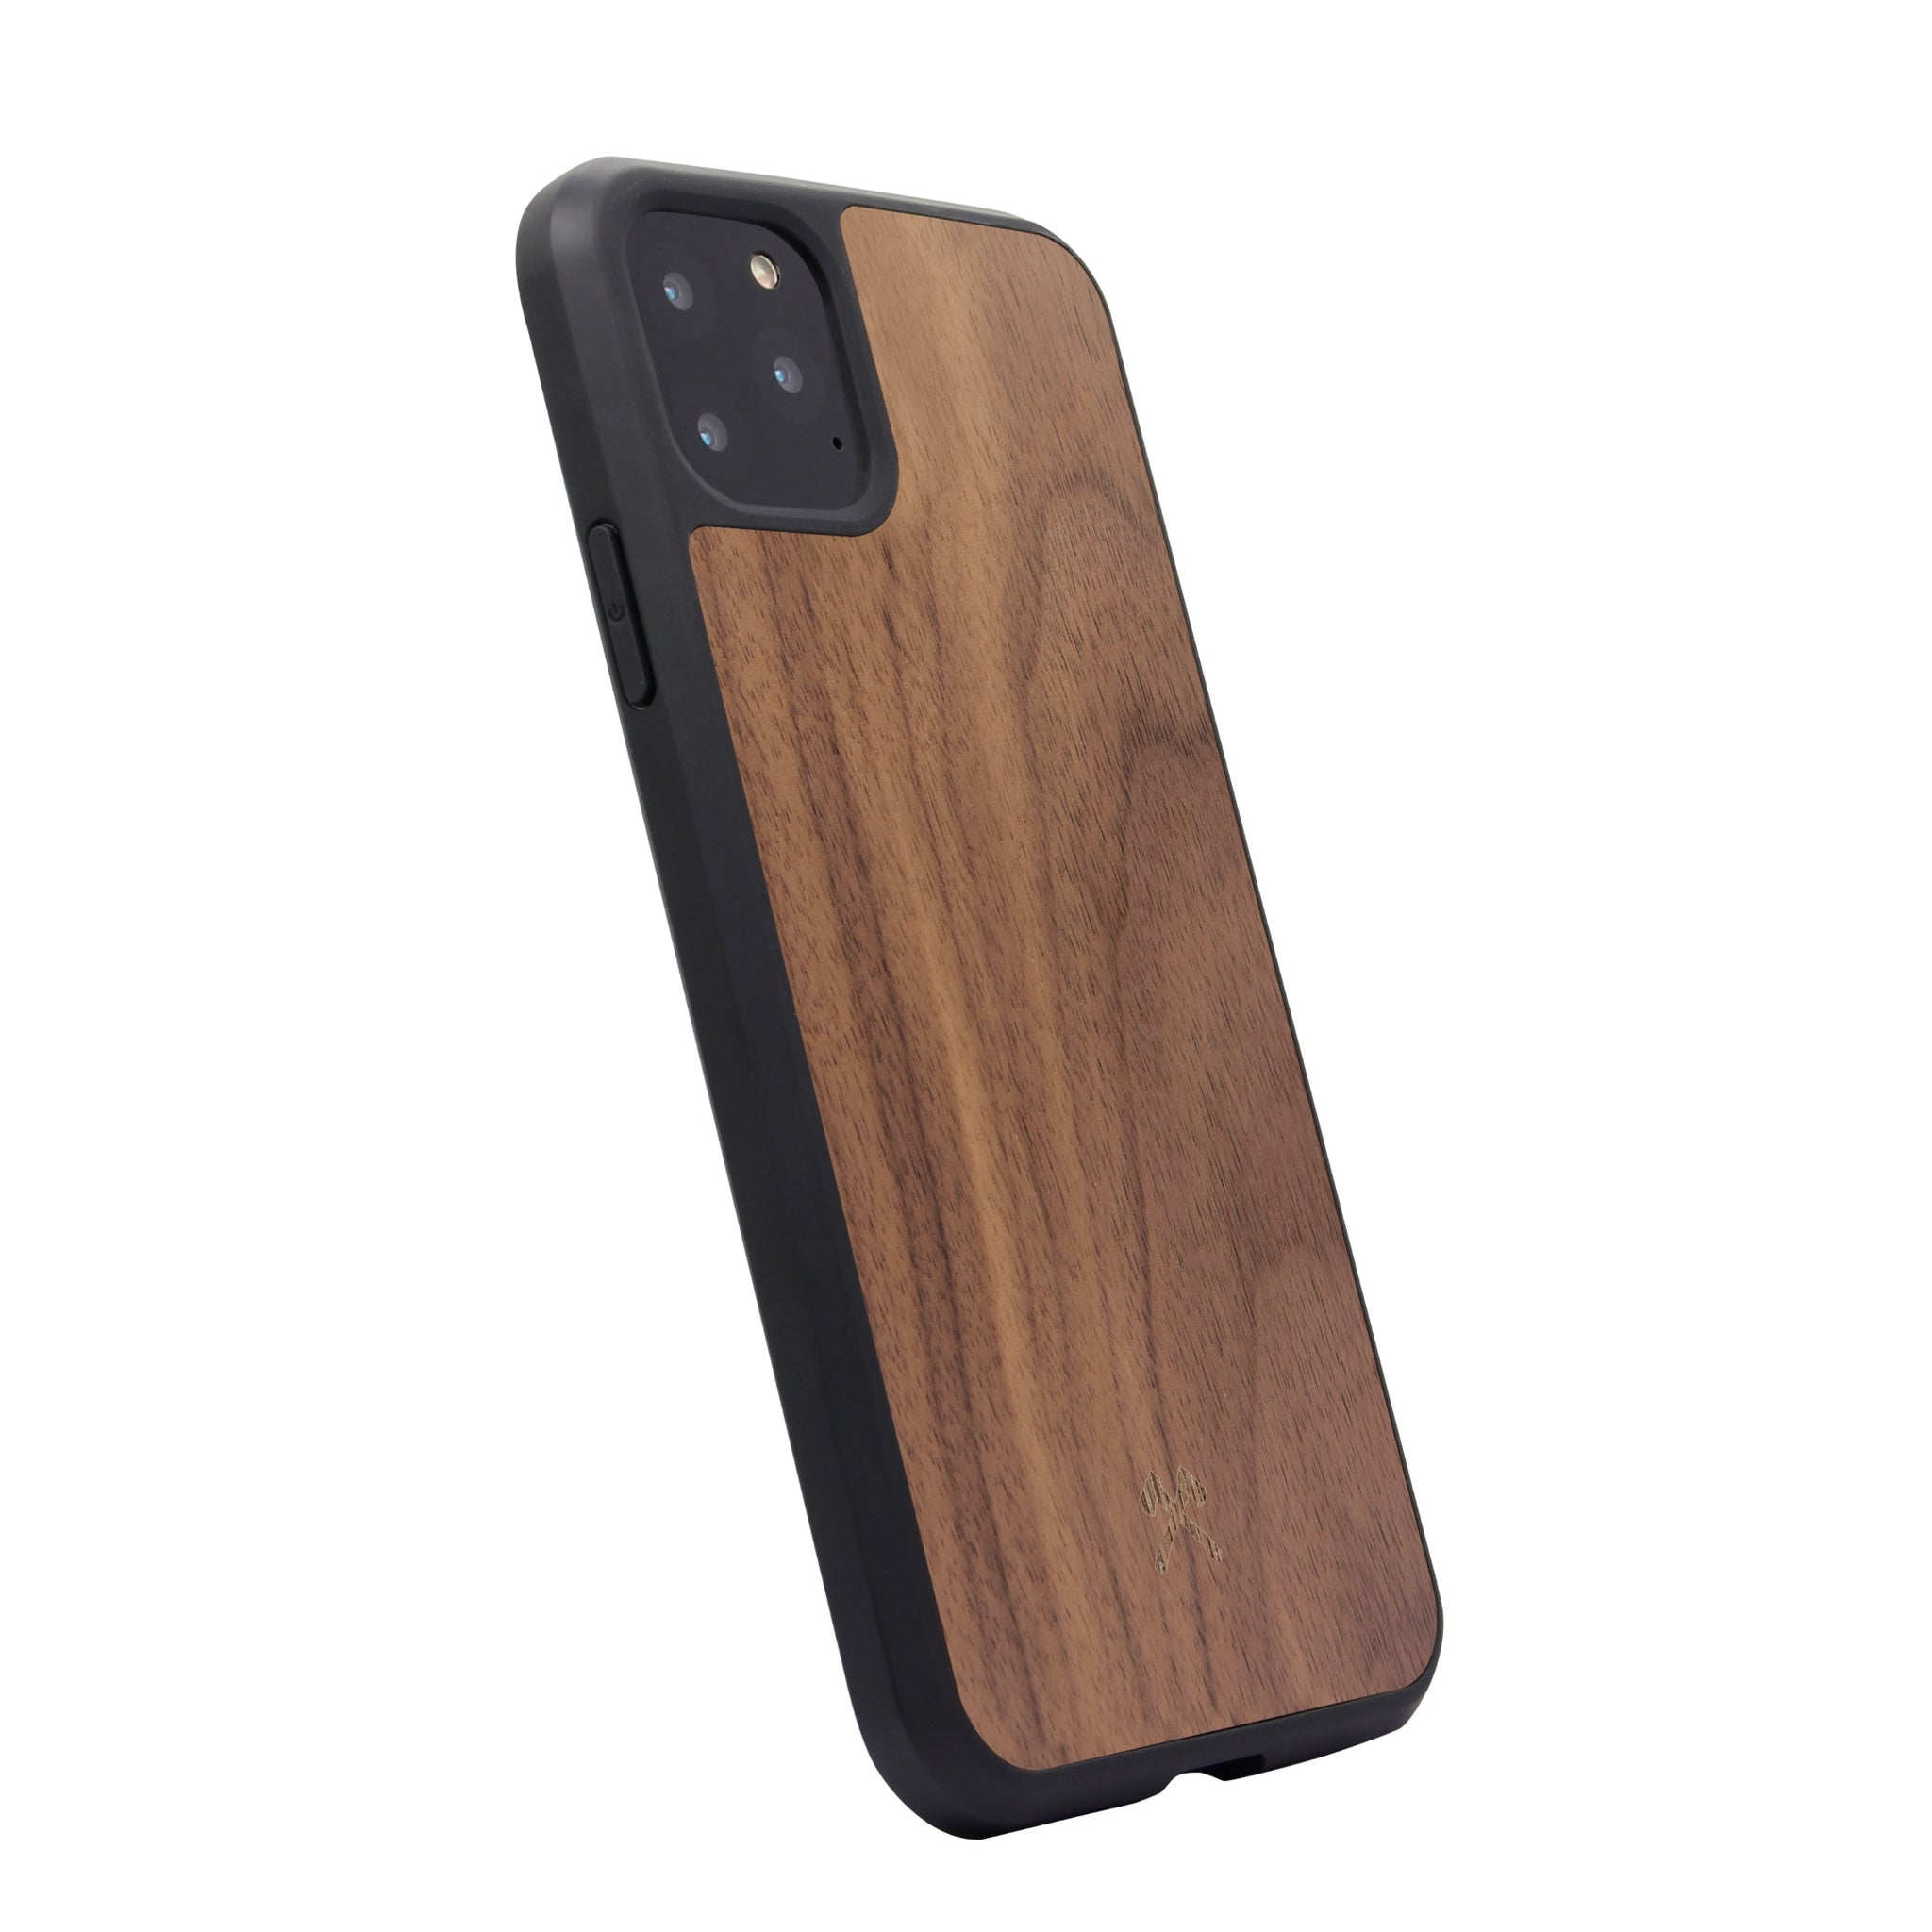 Woodcessories EcoCase Bumper for iPhone 11 Pro - Walnut